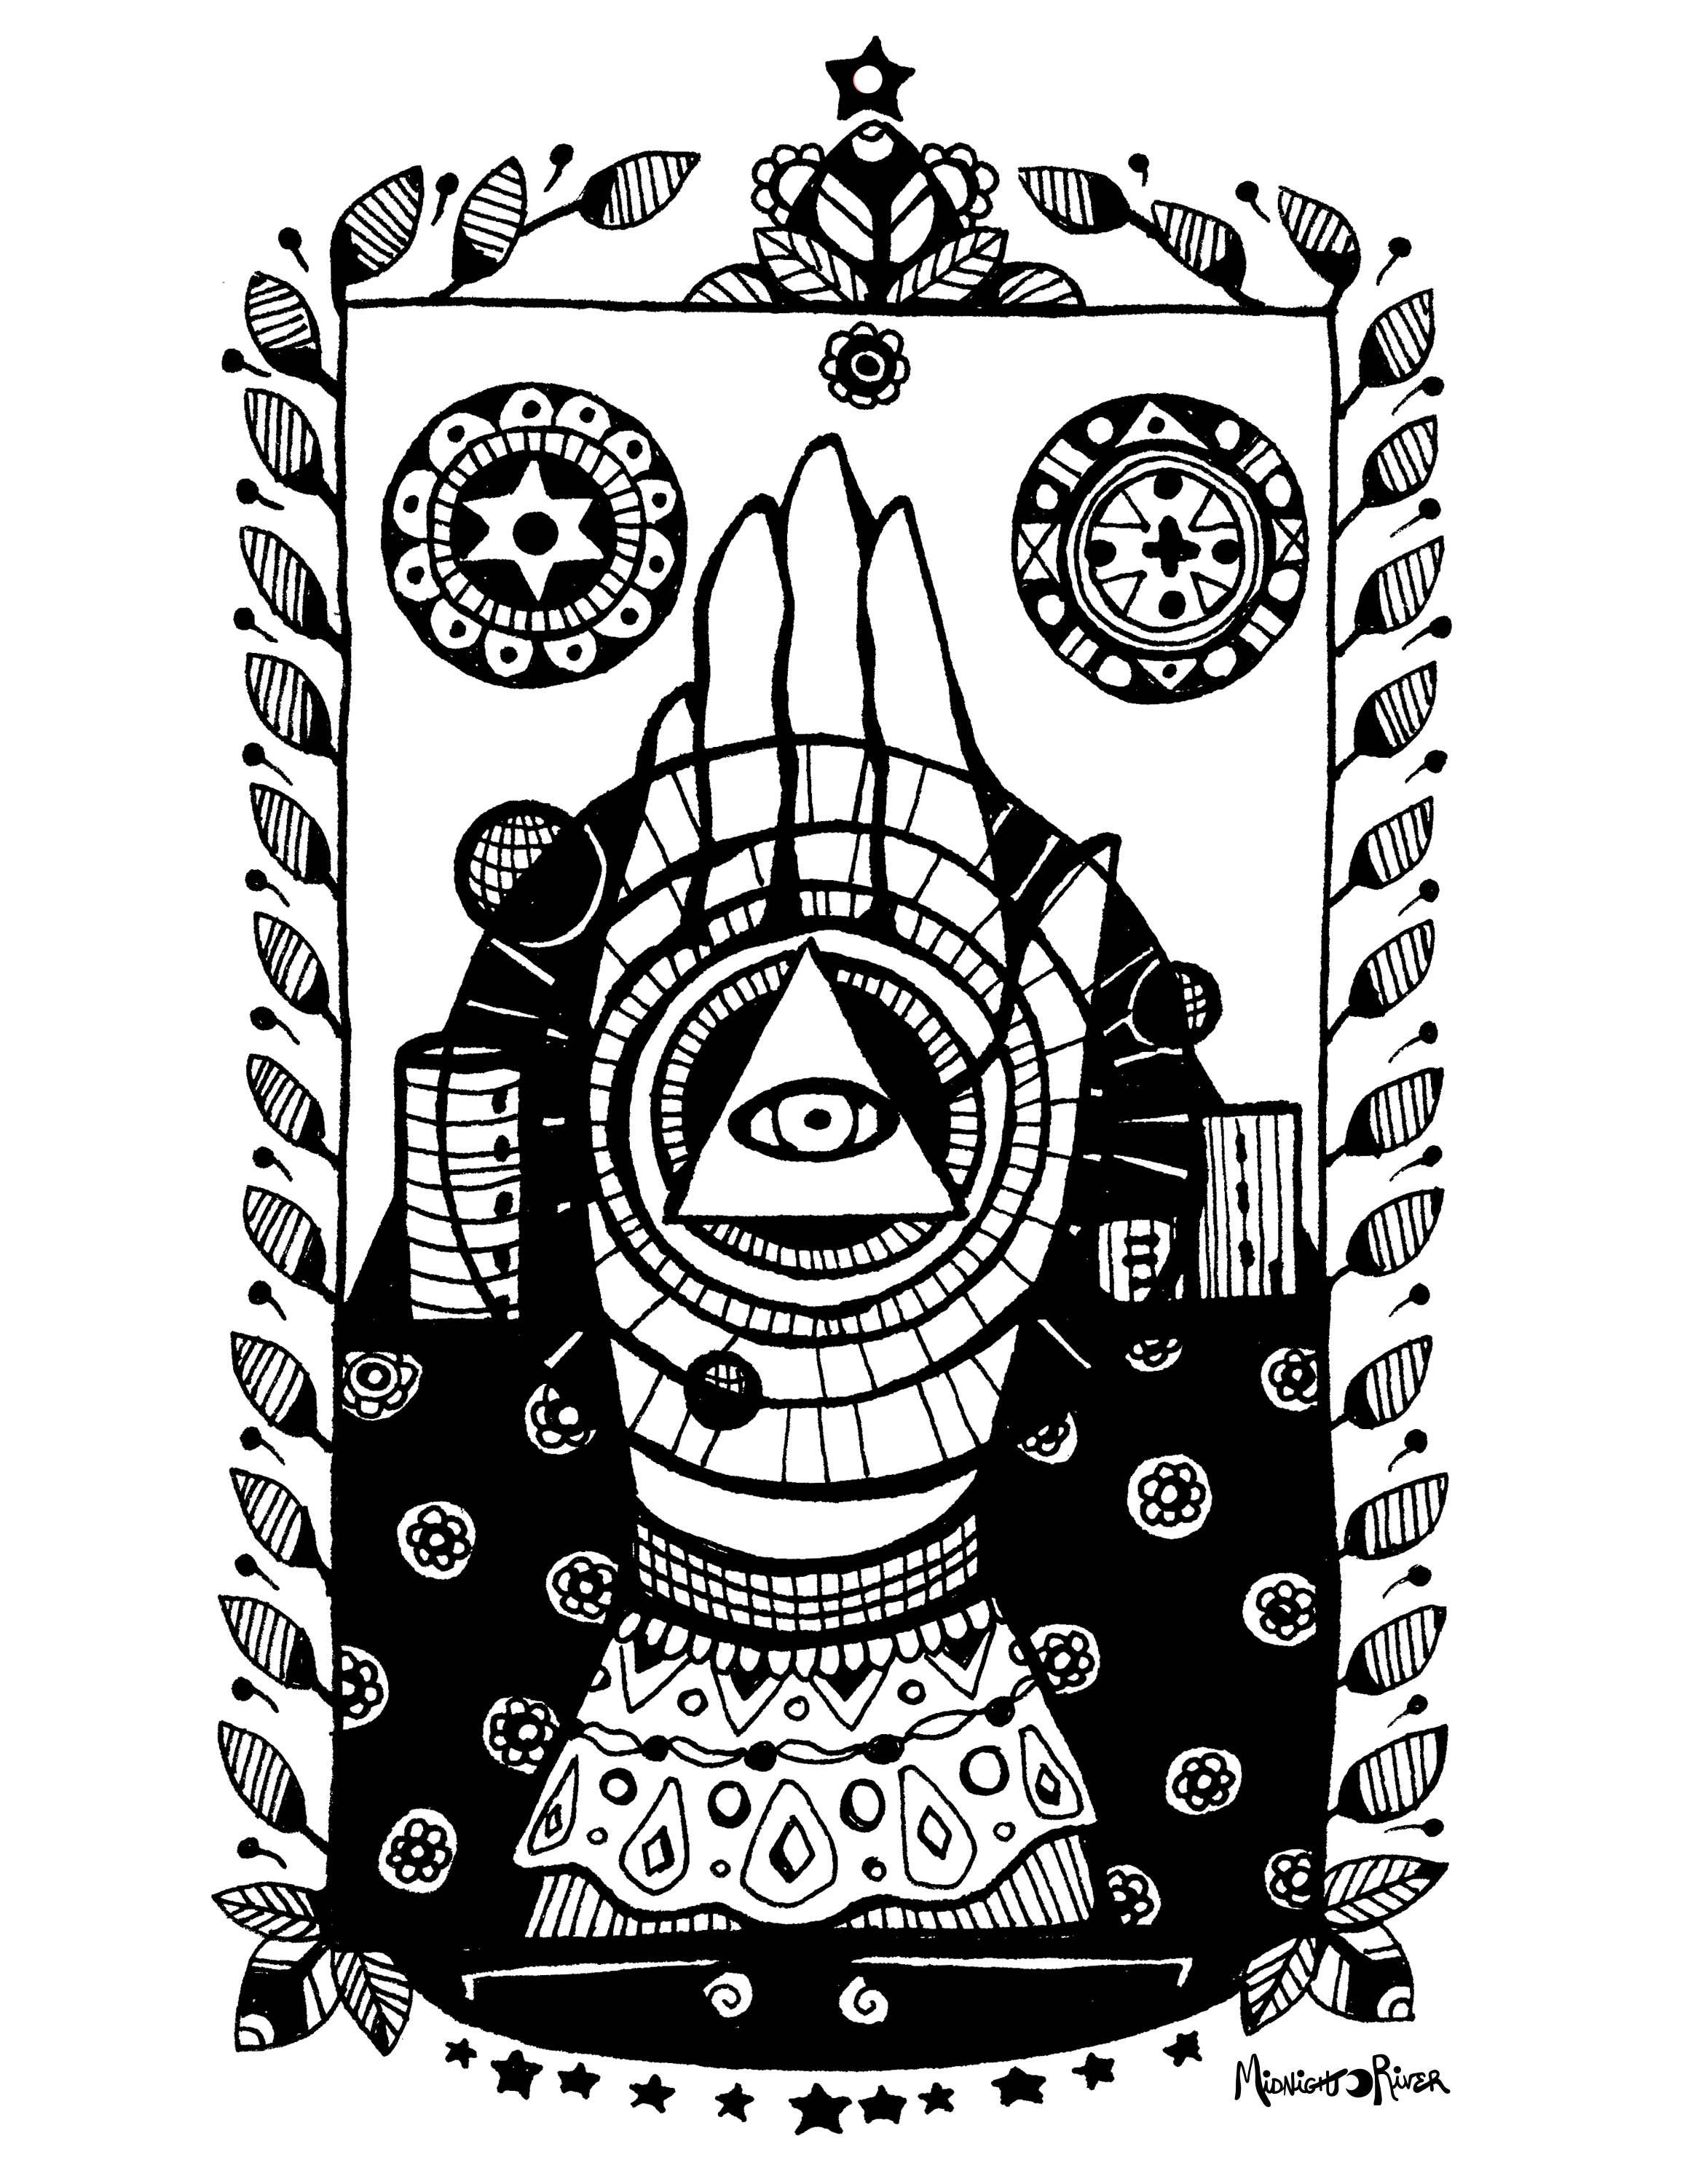 Printable Mystic Hand Coloring Page // All-Seeing Eye Symbol // Magical Adult Coloring PDF